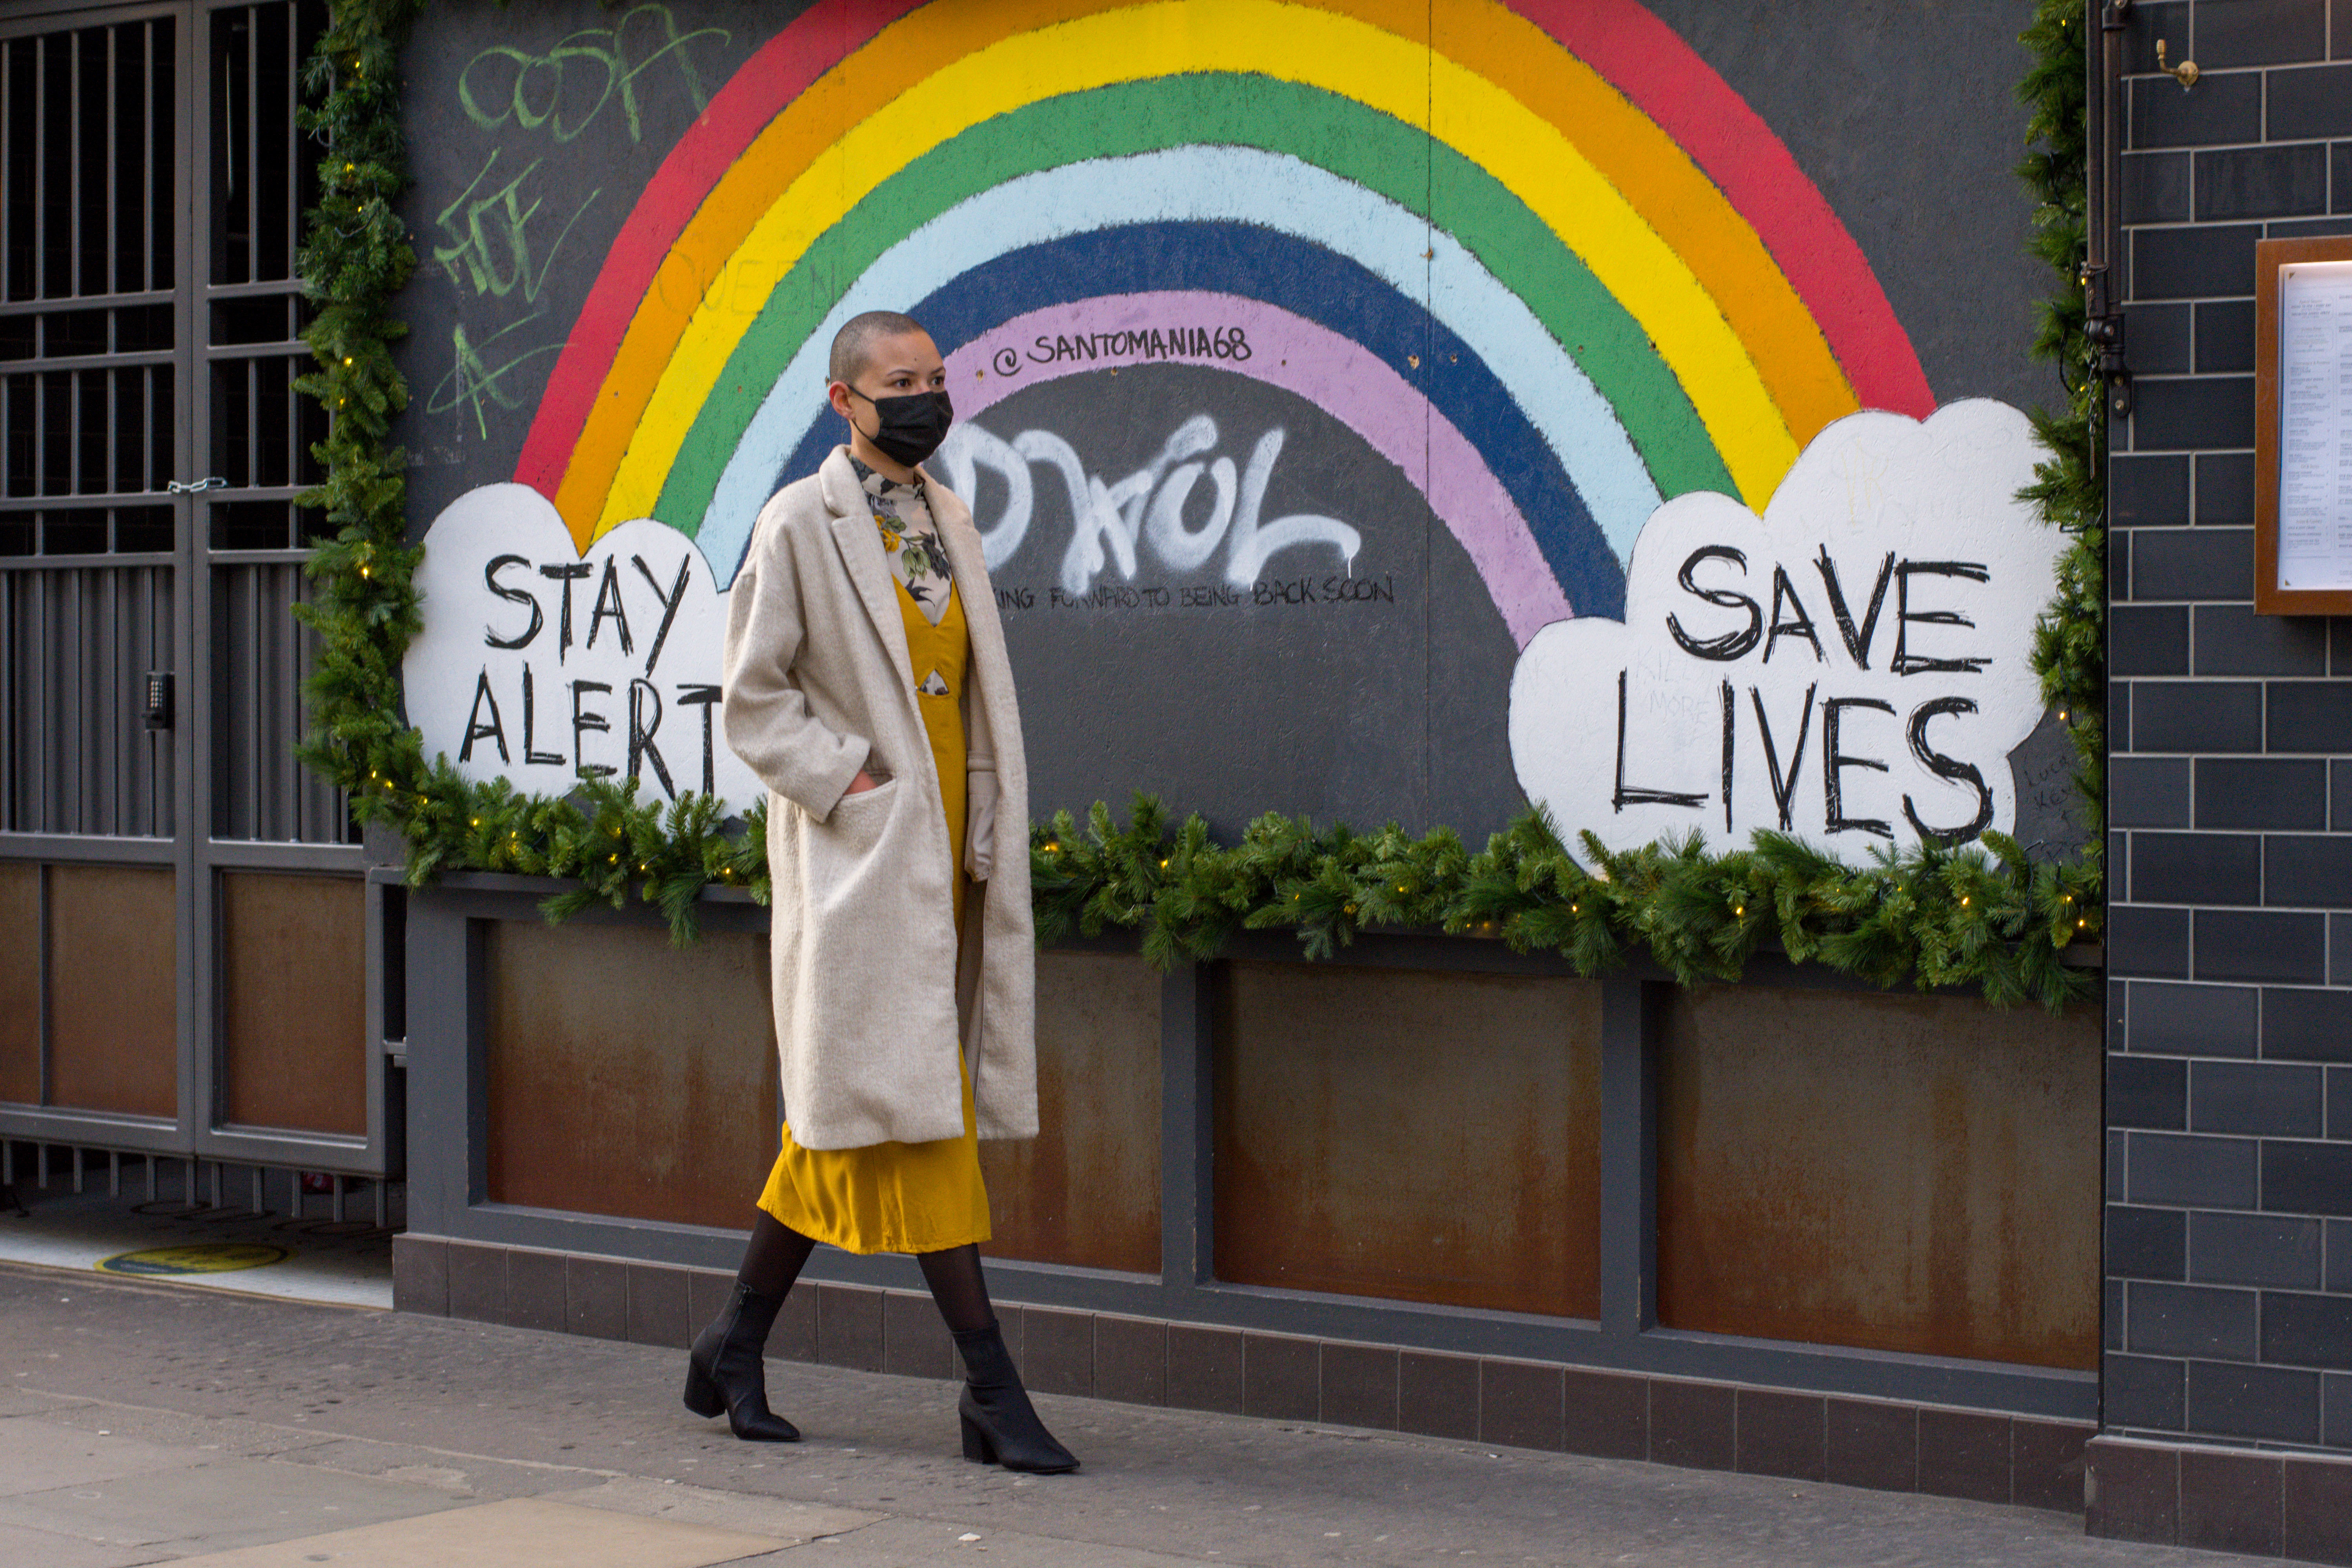 A woman wearing a face mask walks past the Stay Alert Save Lives Rainbow Sign in Soho. As daily Covid19 infection rate hits record high in London, the government is pinning its hopes on the Oxford/AstraZeneca jab. (Photo by Pietro Recchia / SOPA Images/Sipa USA)